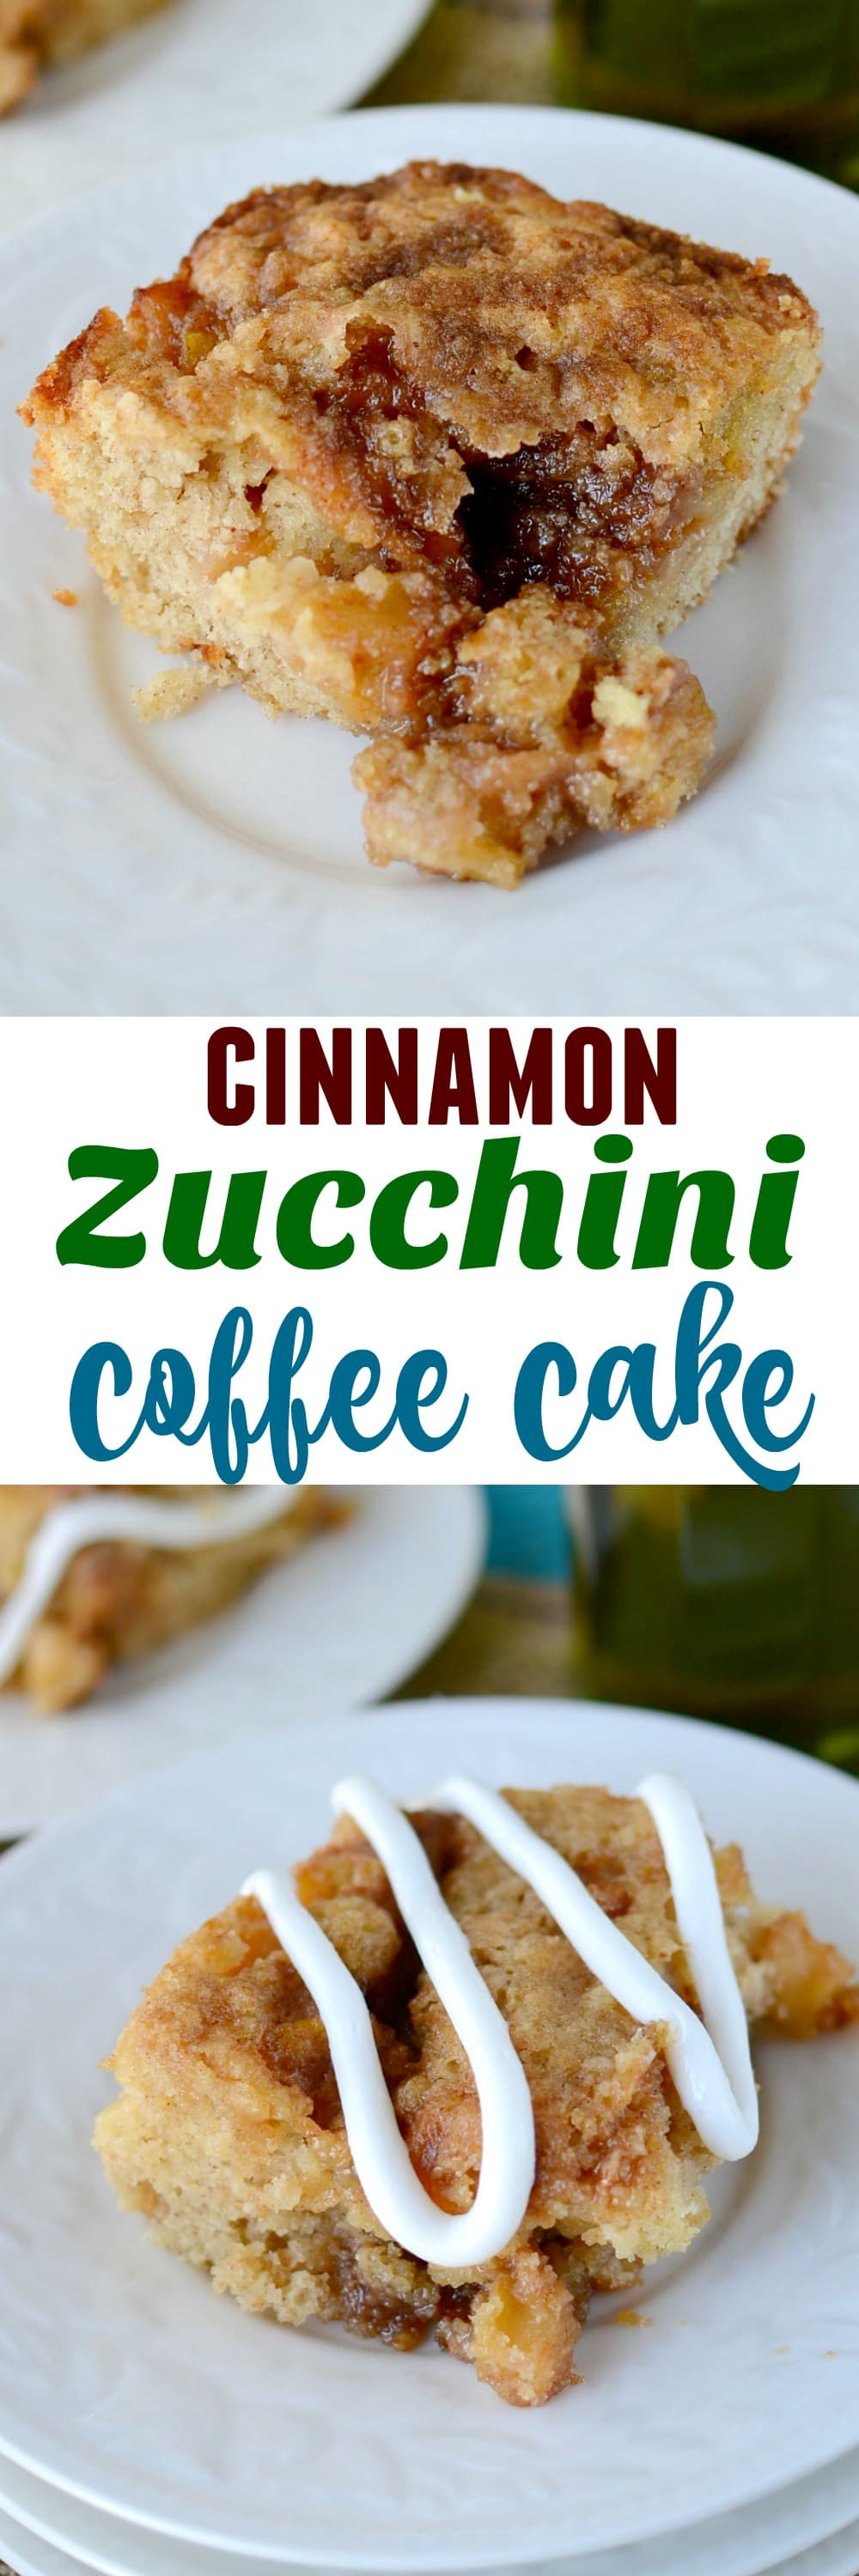 slice of cinnamon zucchini coffee cake on stack of white plates with olive oil bottle behind